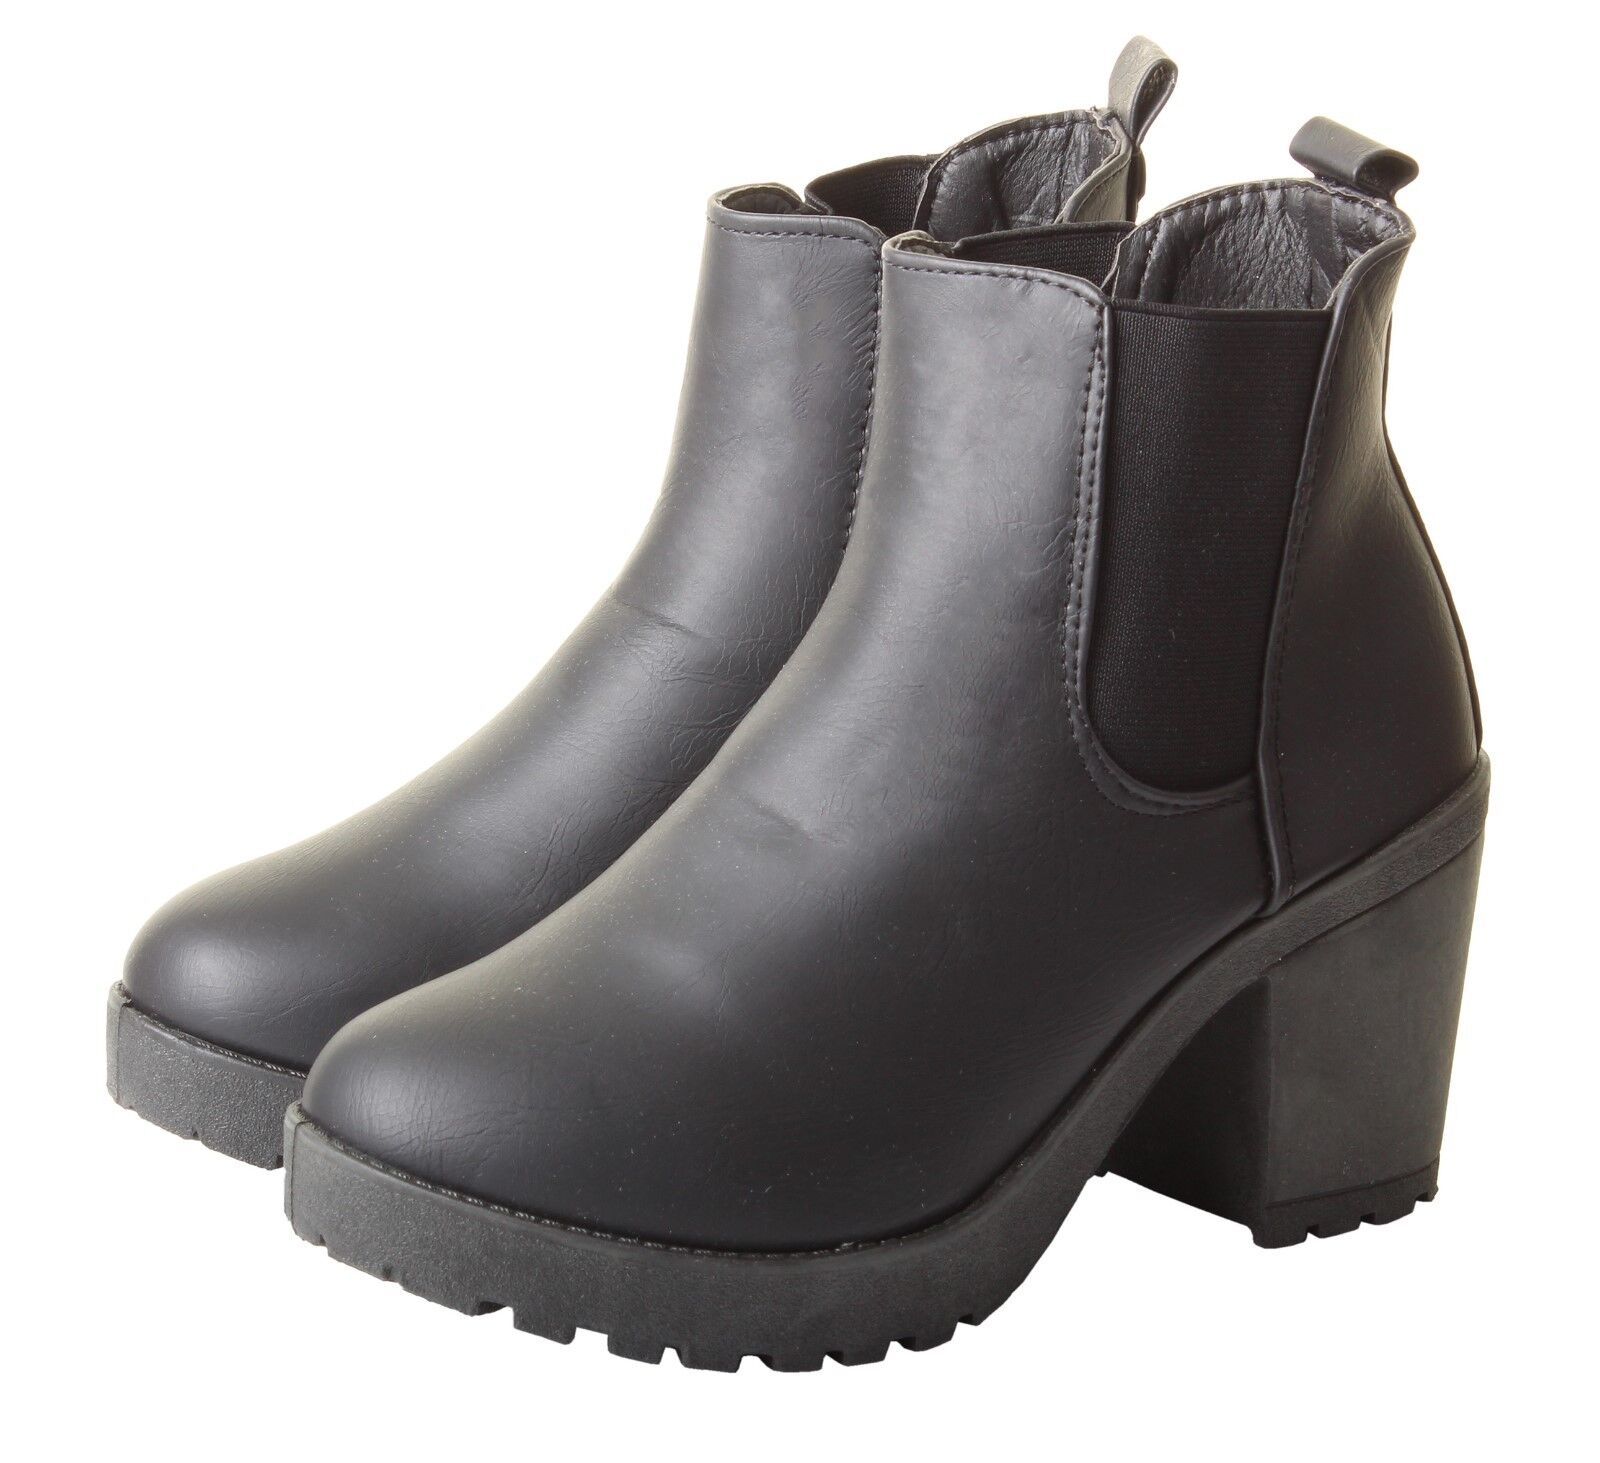 Woman's Chunky Grip Sole Block High Heel Chelsea Stretch Black Ankle Boots Shoes 1